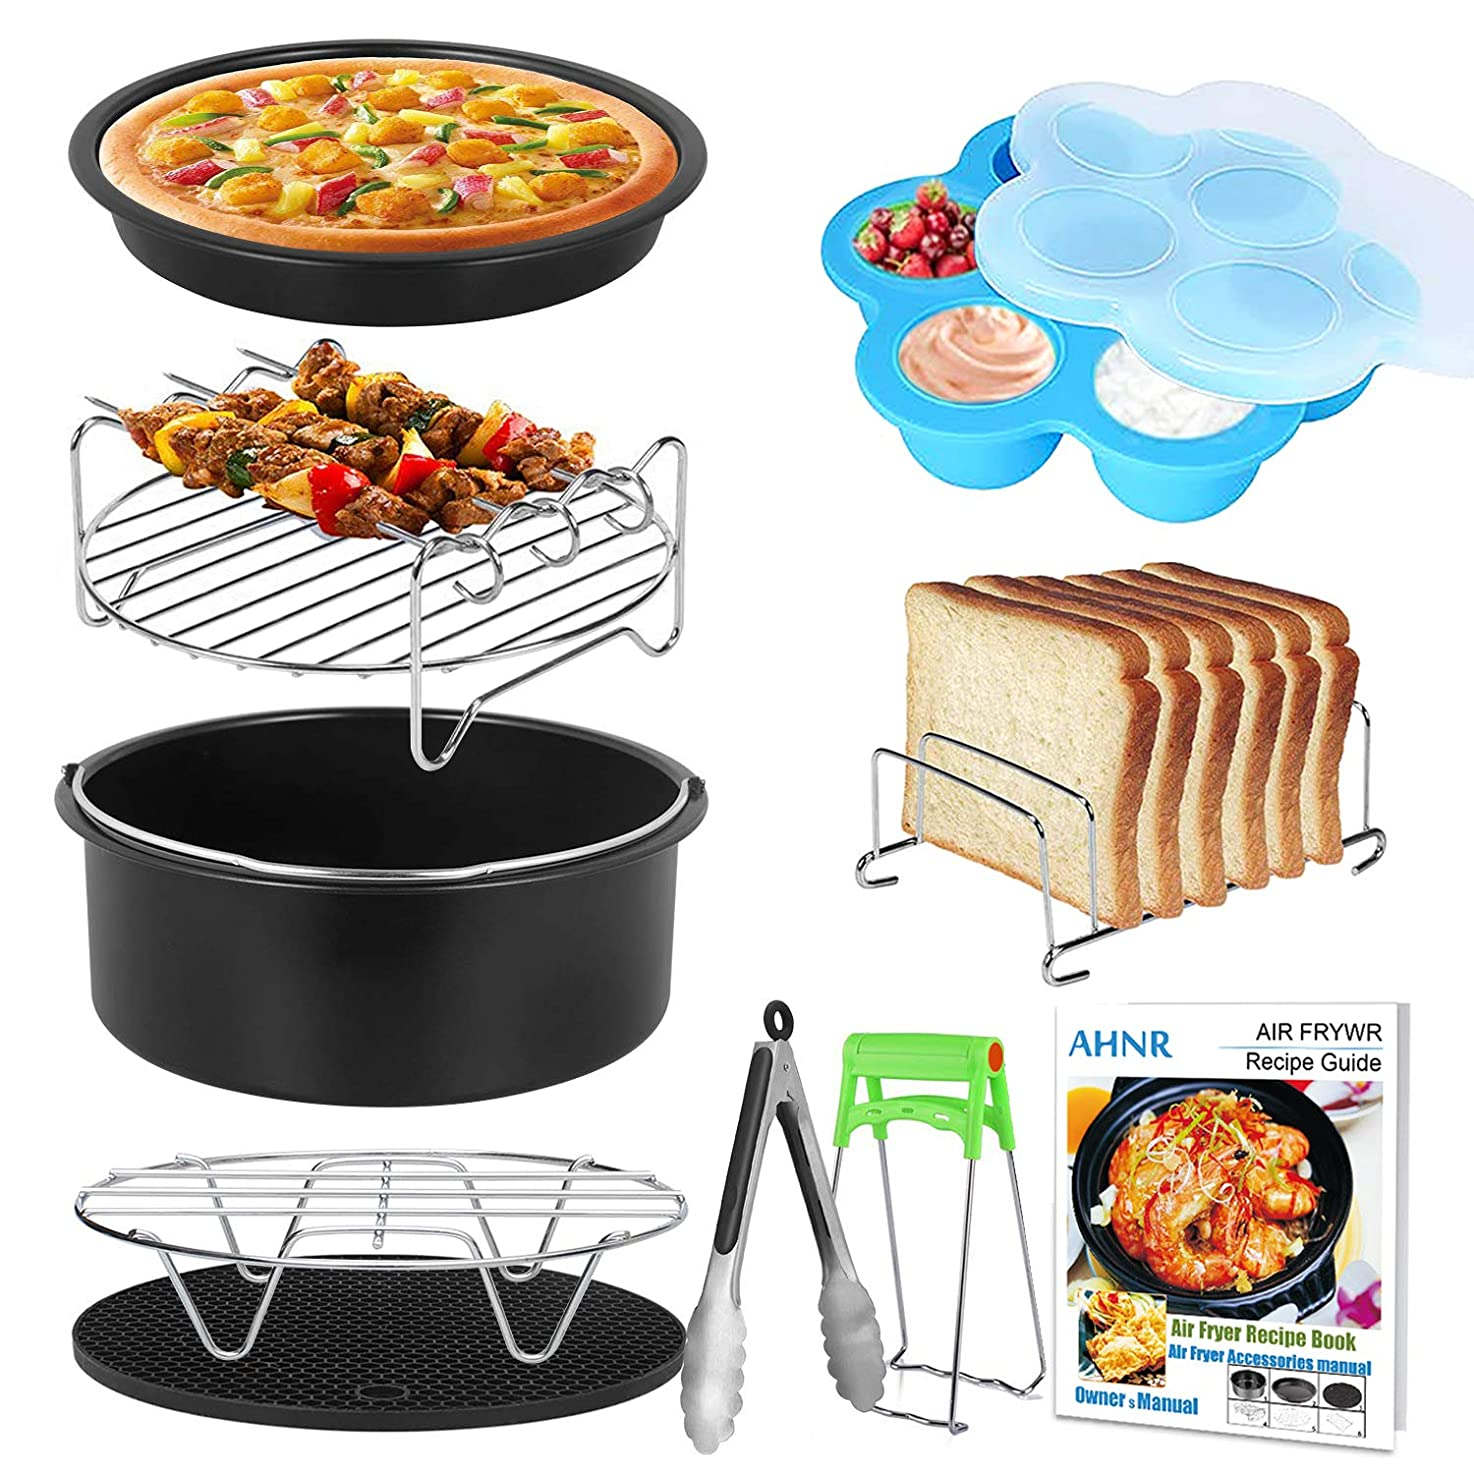 Air Fryer Accessories with Cake Barrel Recipe Cookbook, AHNR Airfryer Accessory Set of 10 for Philips Gowise USA Cozyna Airfryer 3.7QT - 5.3QT lhkopmbruesfd0